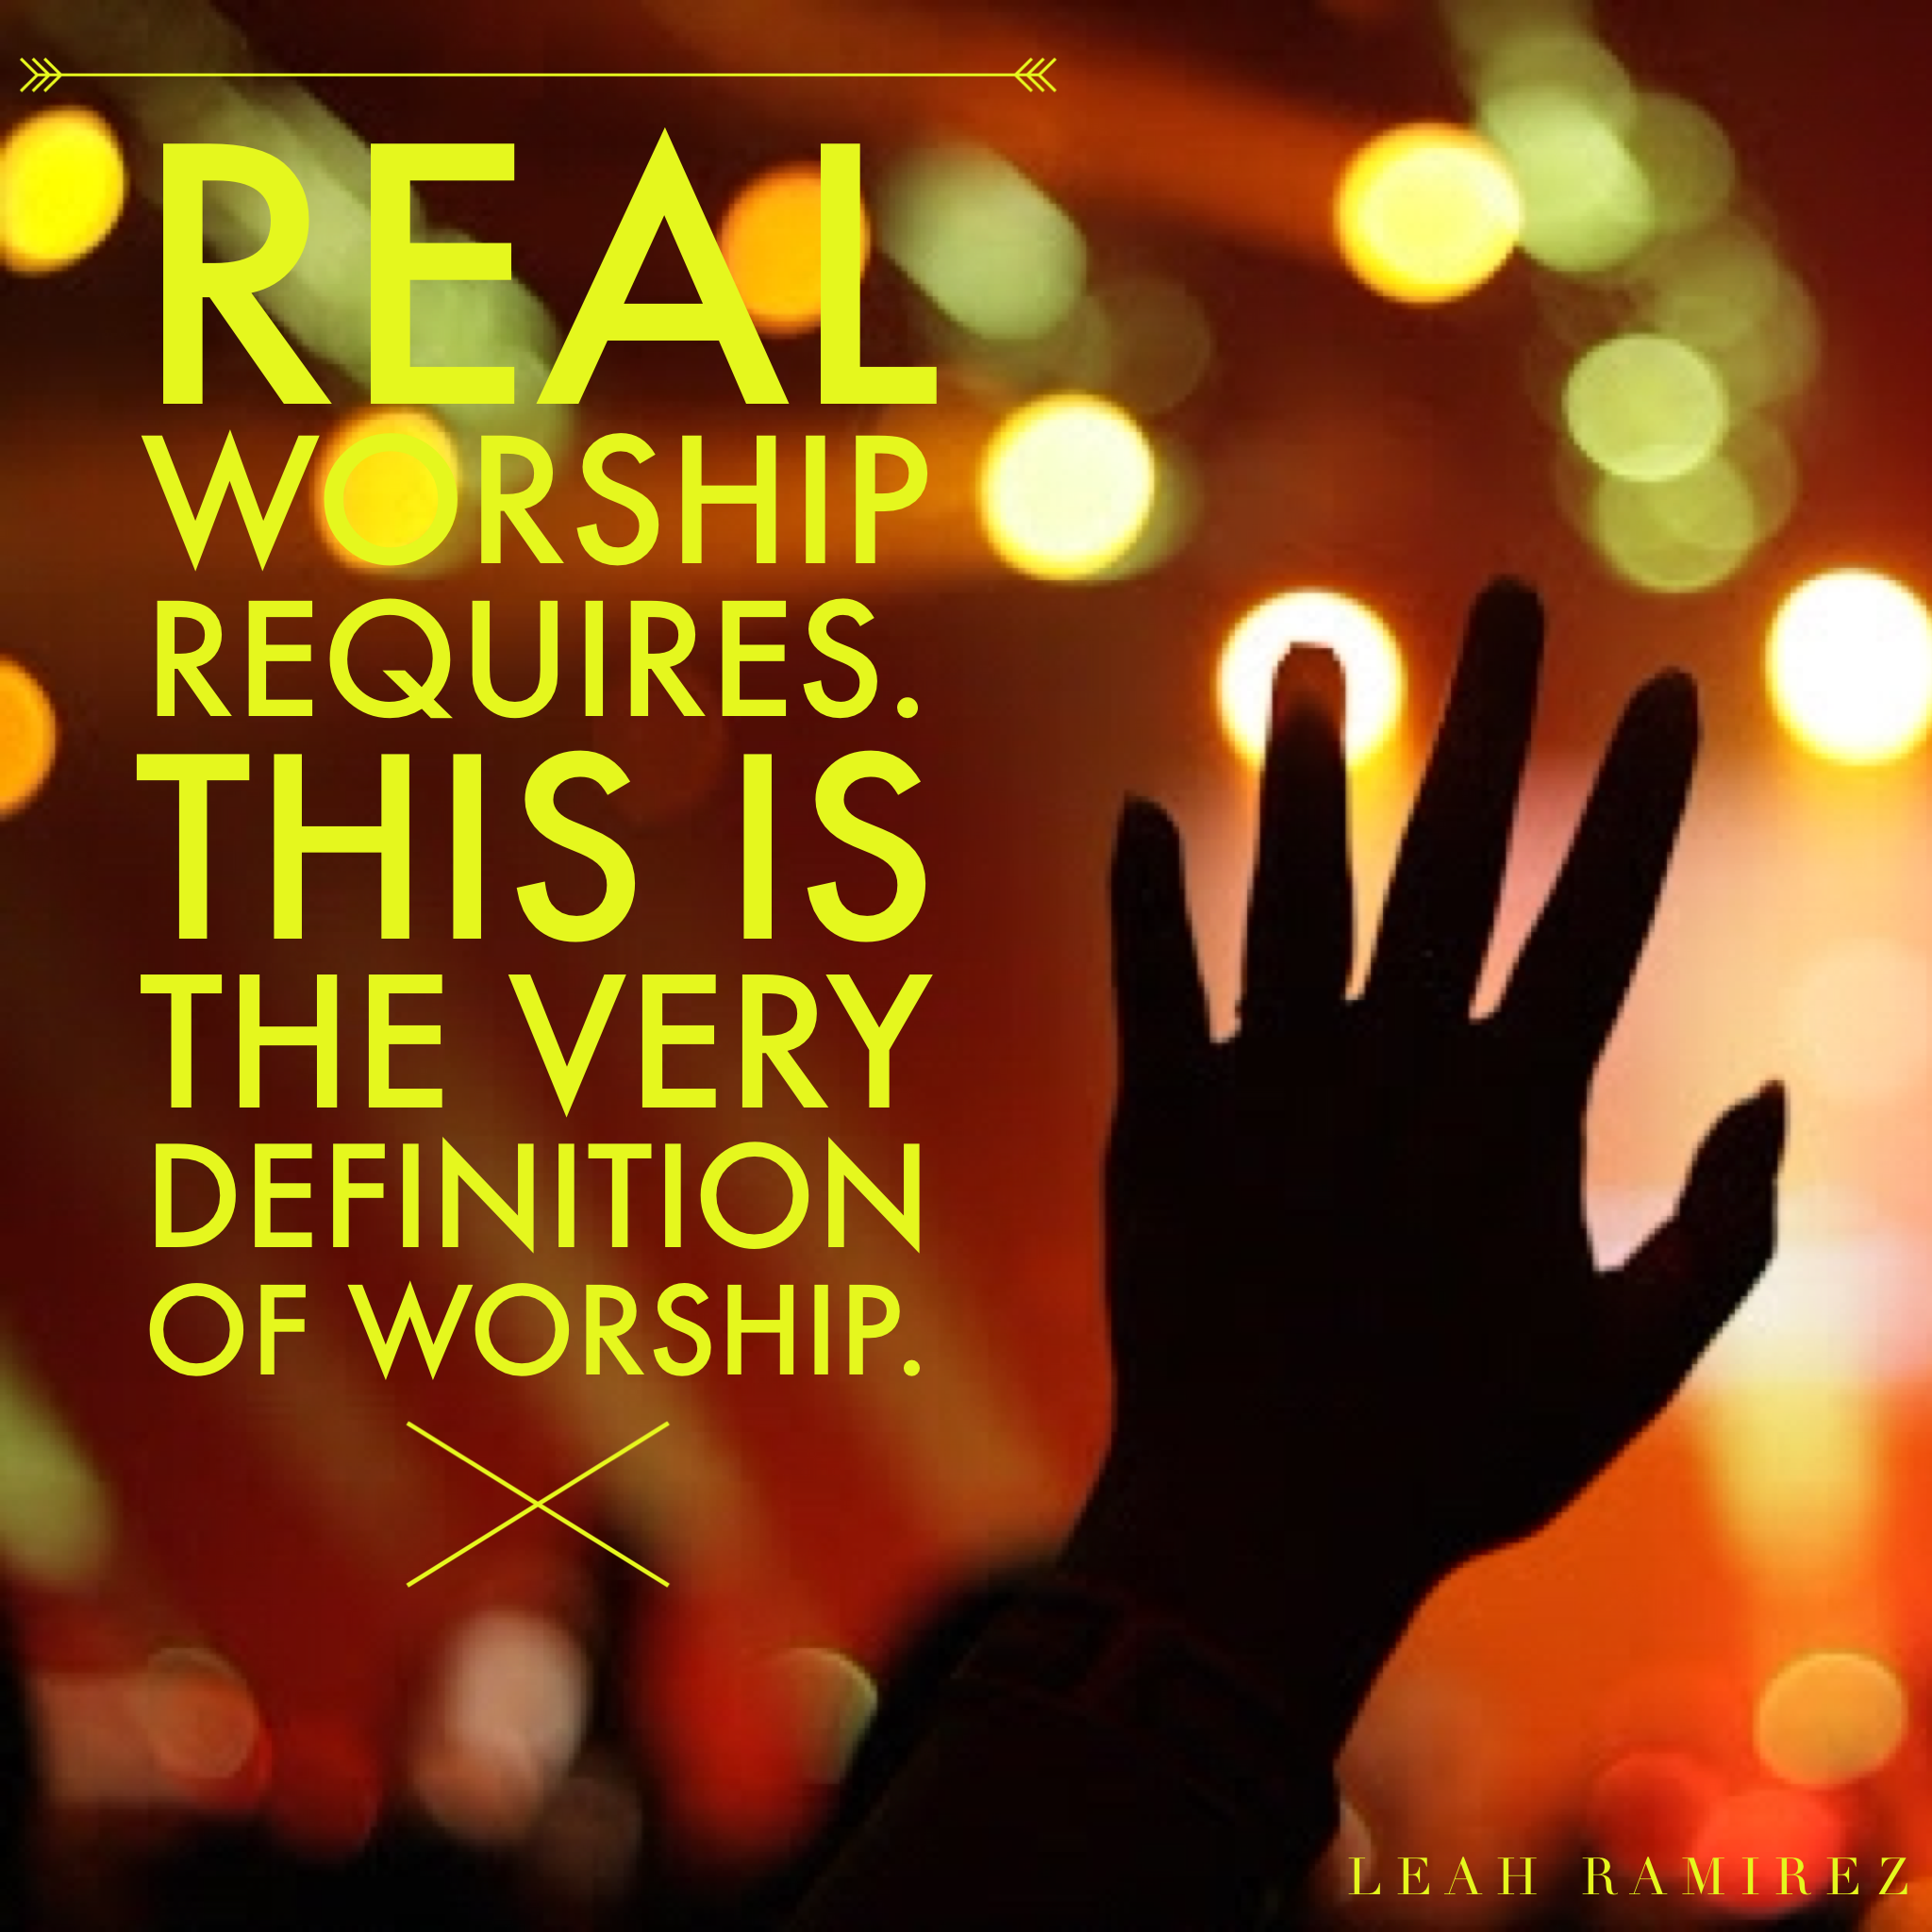 The Requirement of Worship